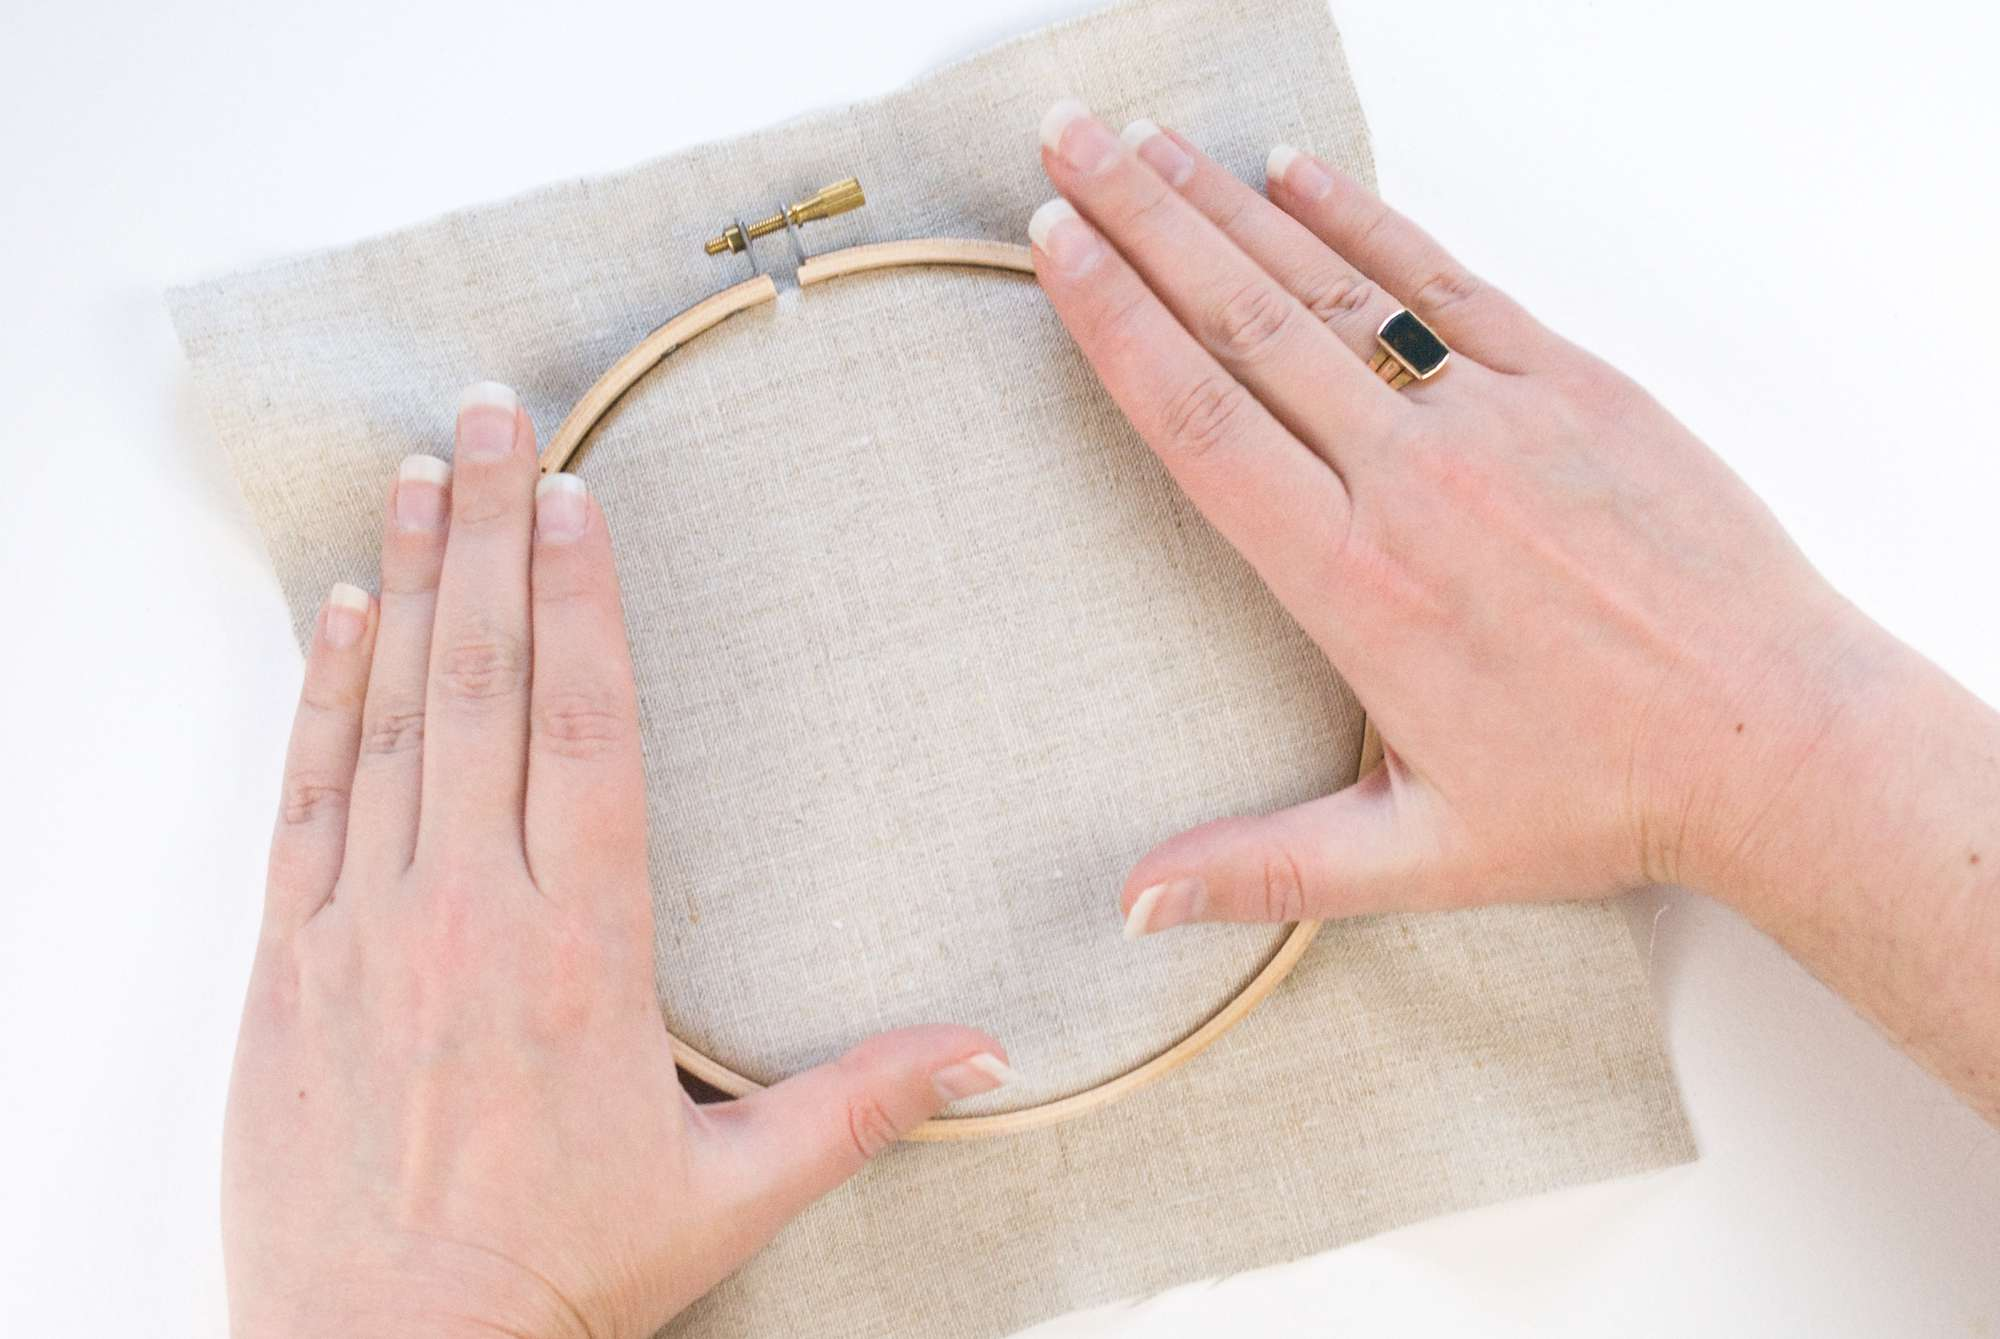 Woman's hand pressing the embroidery hoop over the fabric.